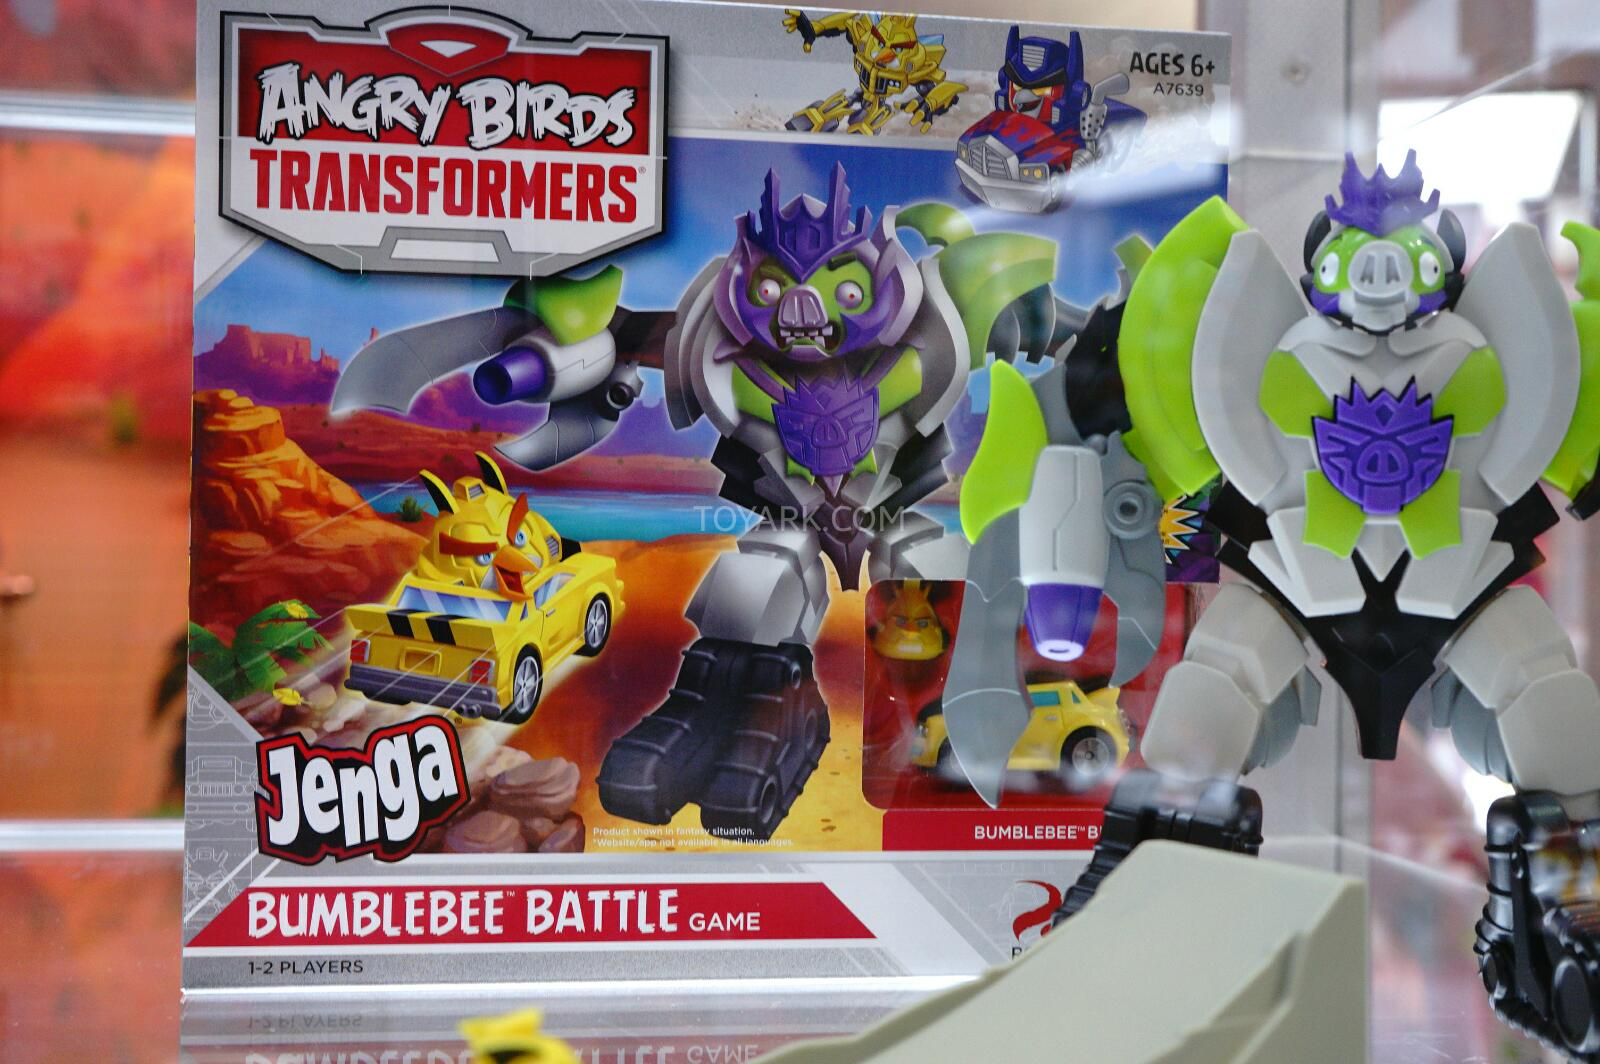 News Photos Transformers Sdcc Angry From Birds 2014 TwiPkXulOZ